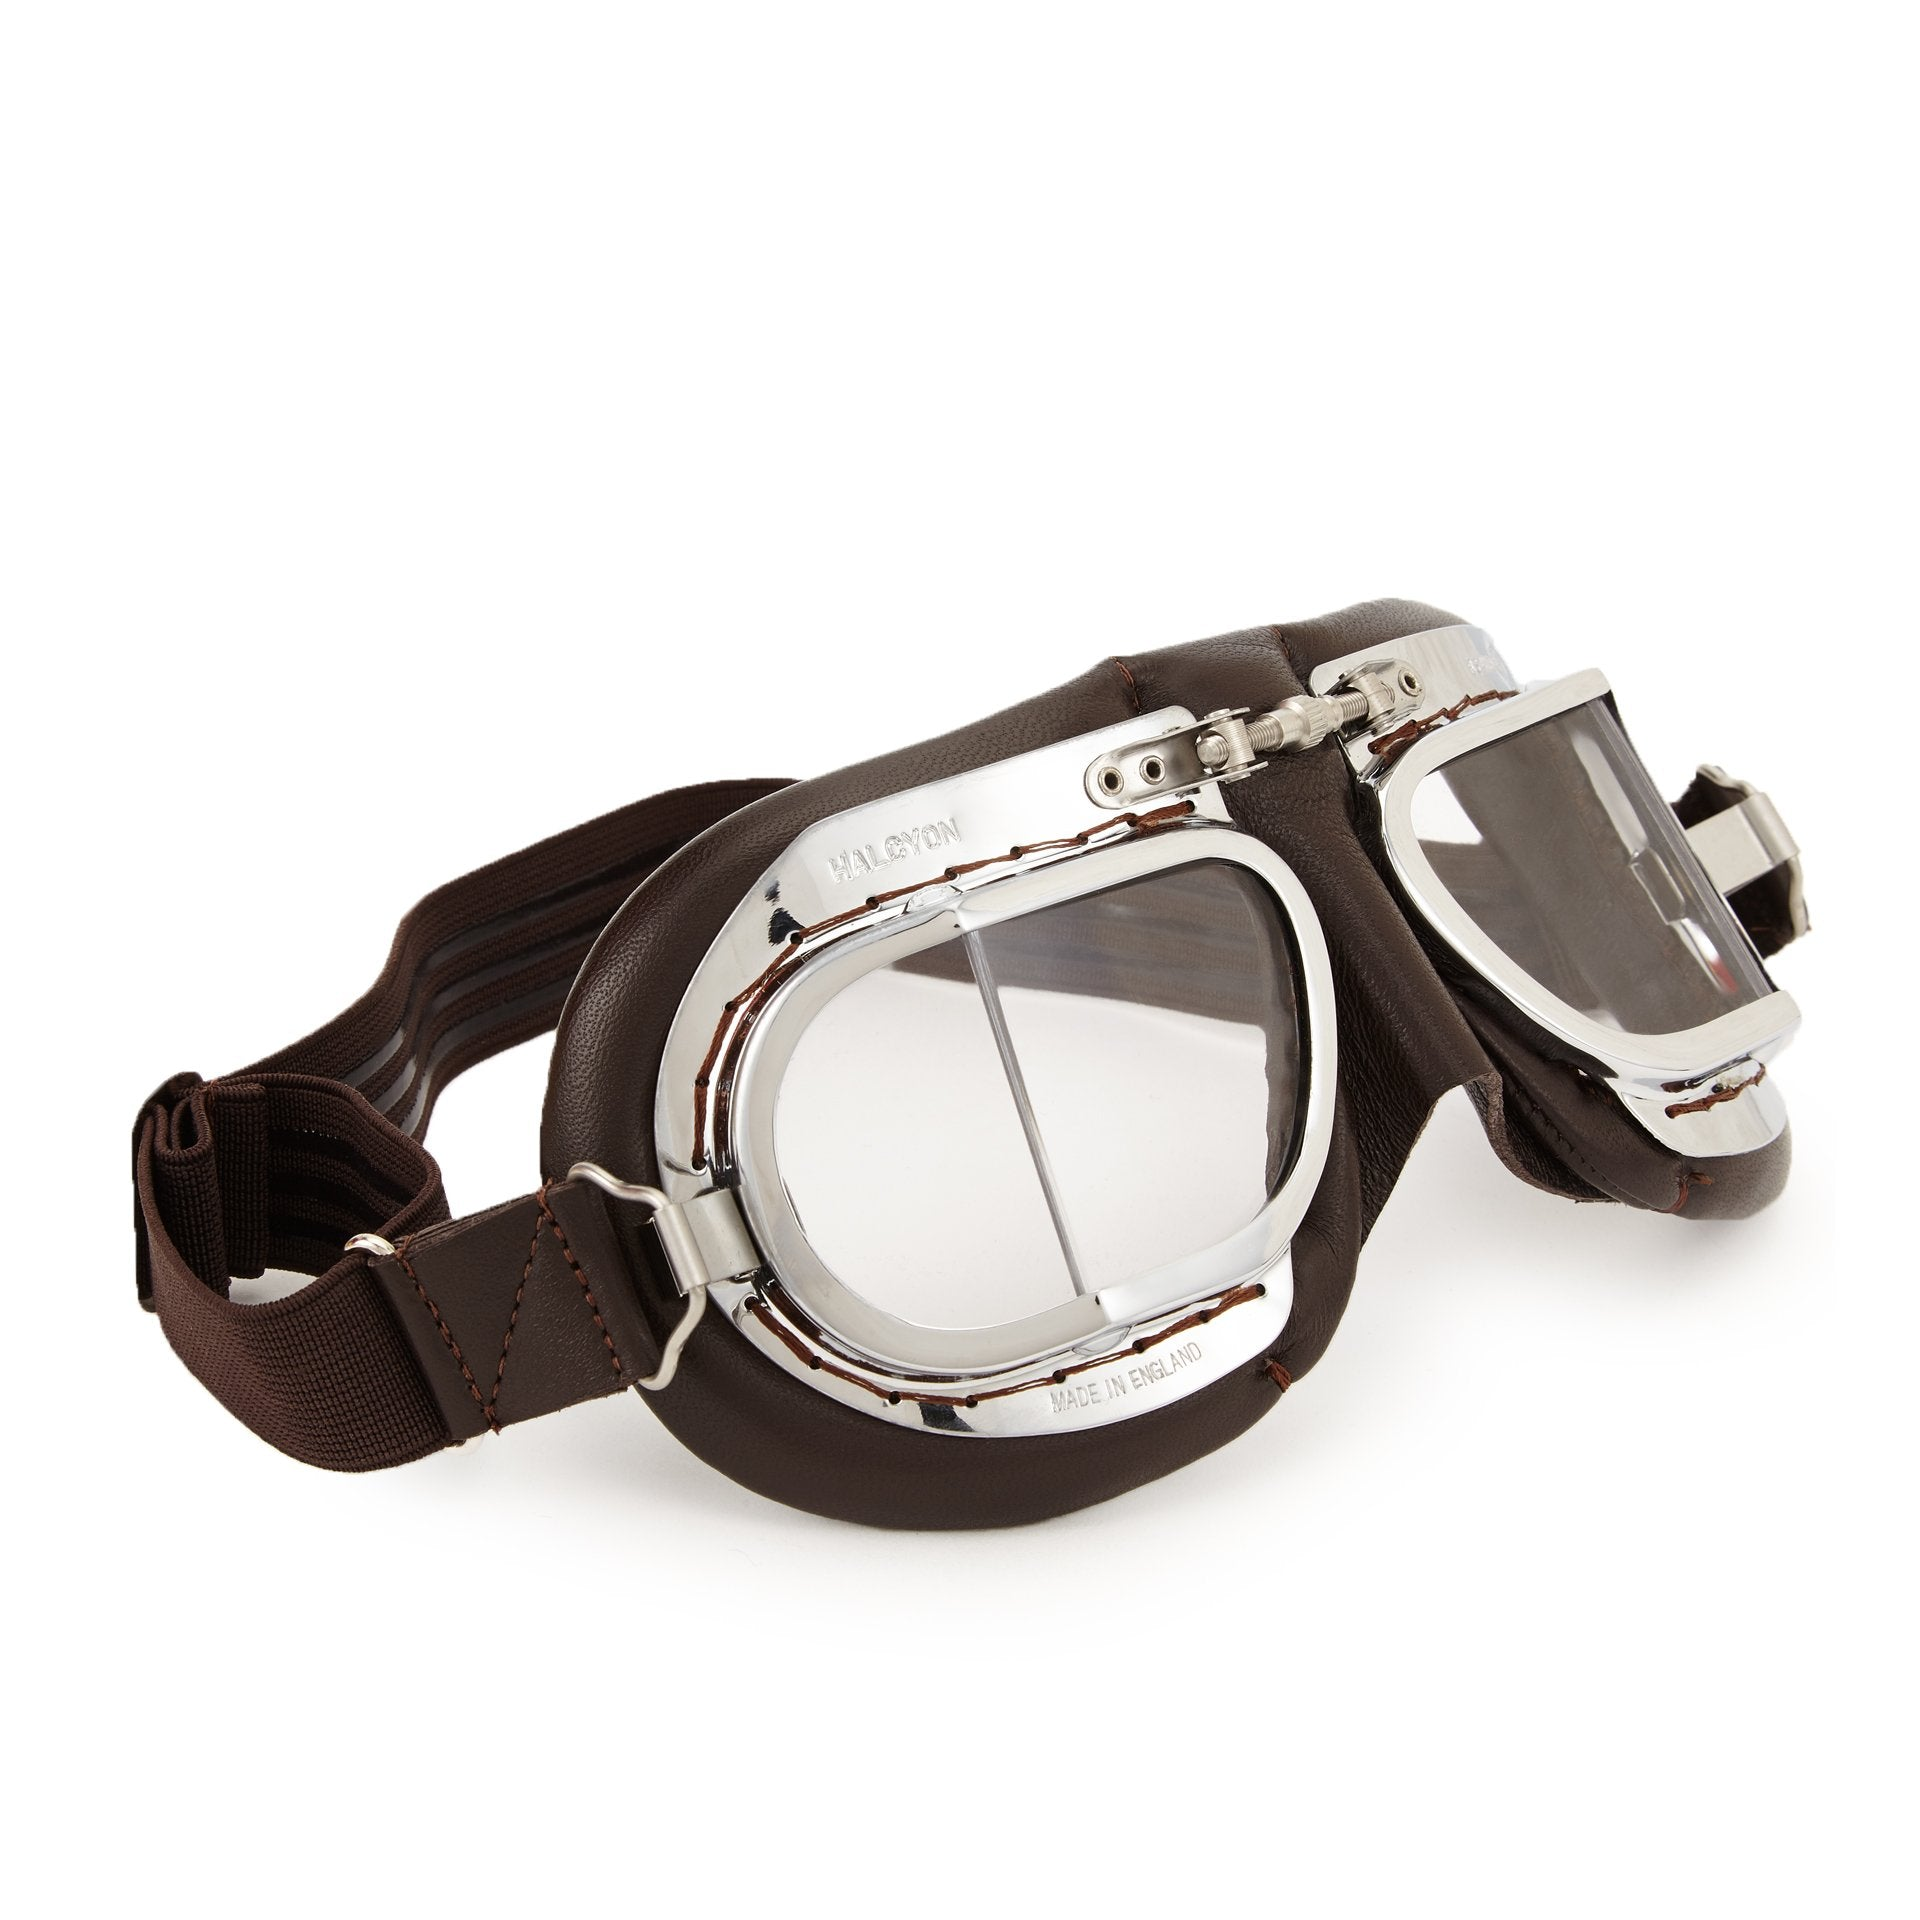 Aviator goggles - Products - Lock & Co. Hatters London UK